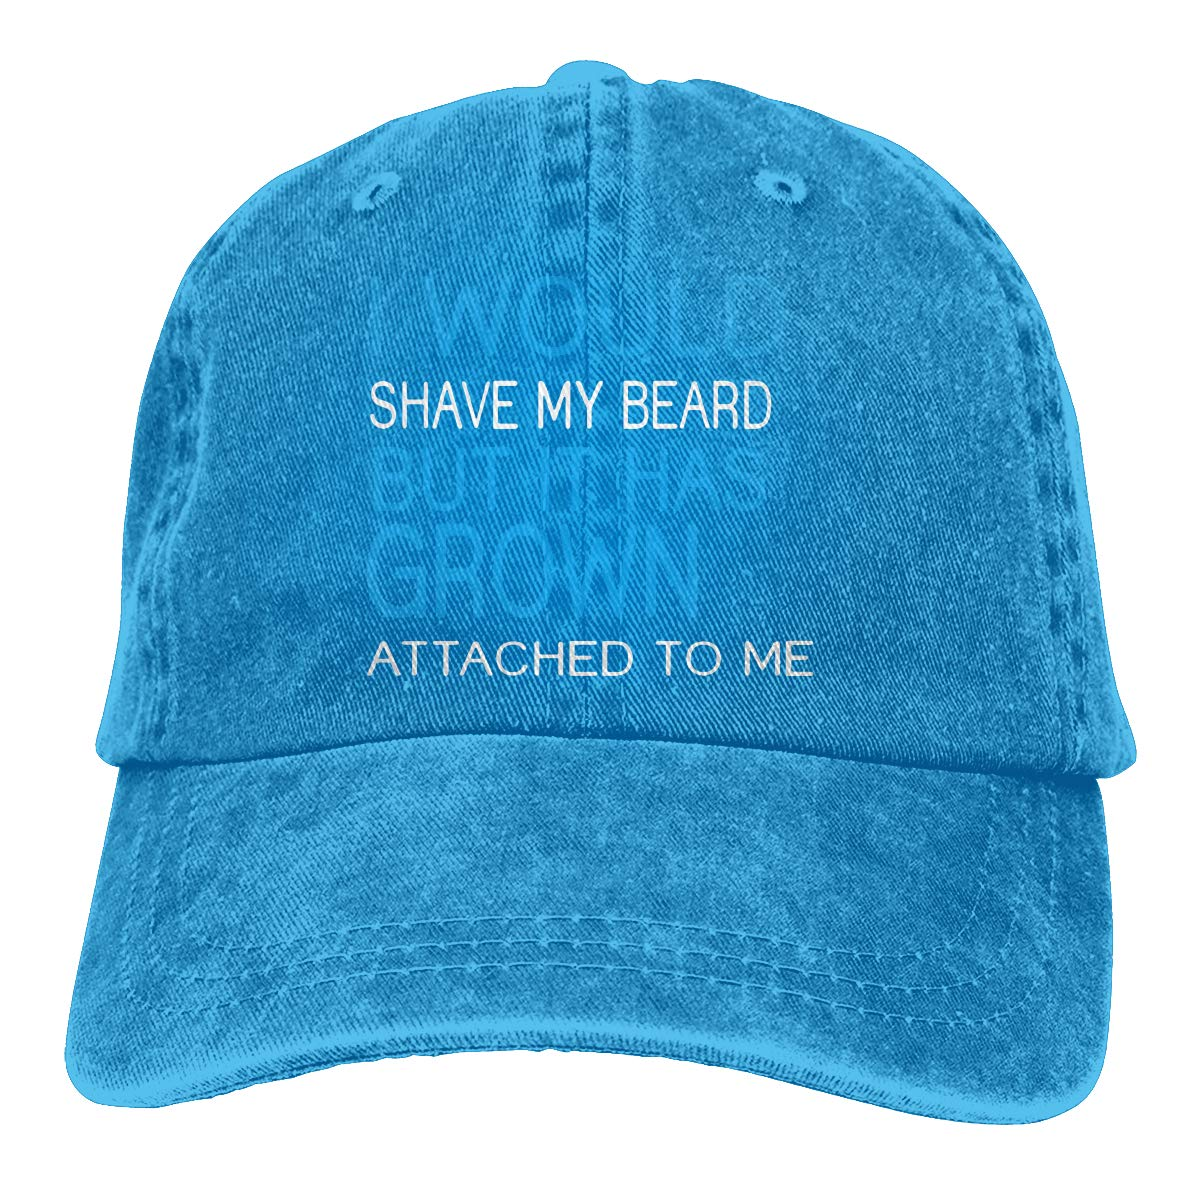 I Would Shave My Beard But It Has Grown Attached to Me Adult Trendy Denim Sun Hat Adjustable Baseball Cap